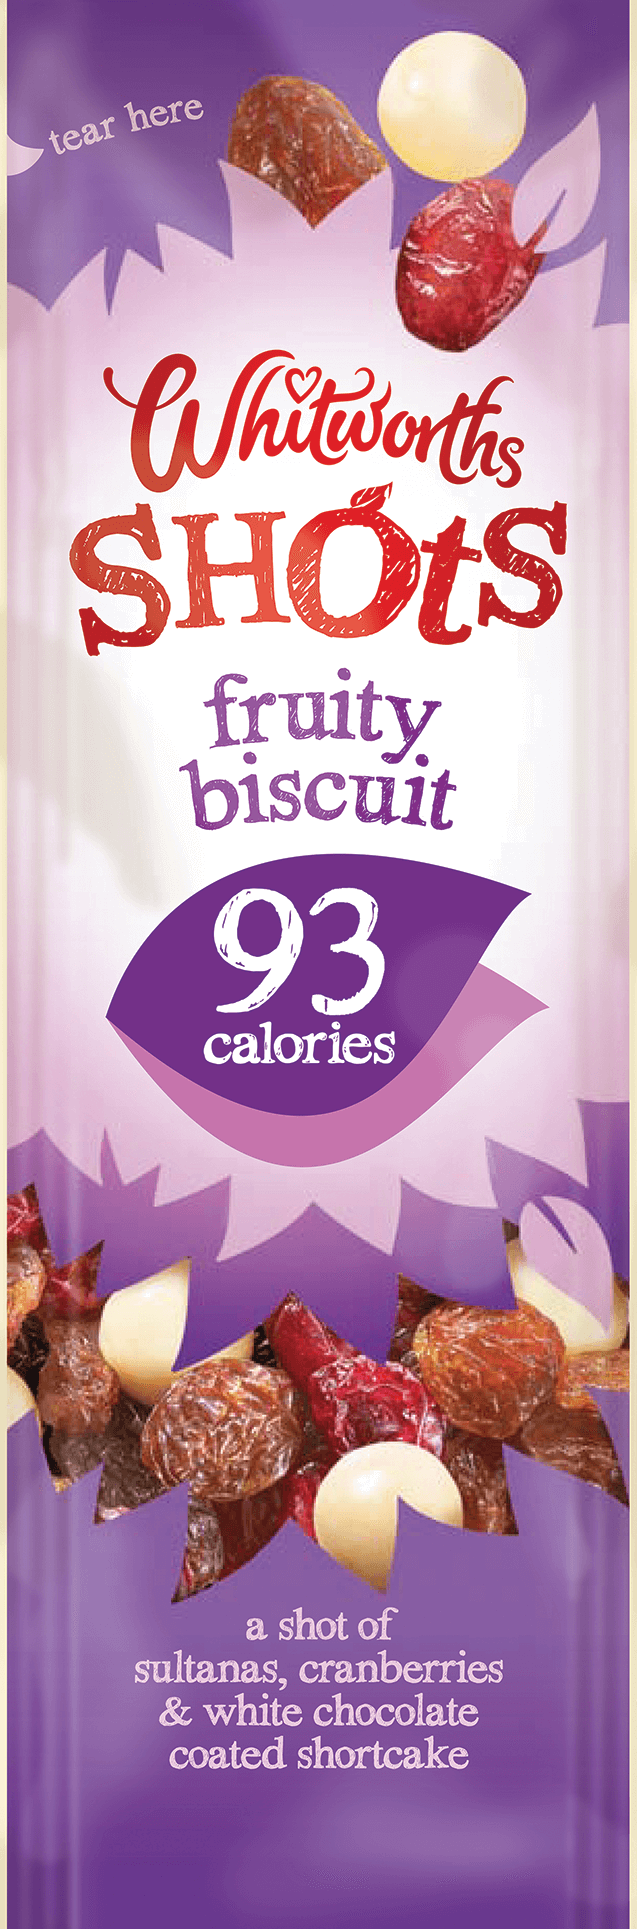 Fruity Biscuit 25g - Whitworths Snack Shot